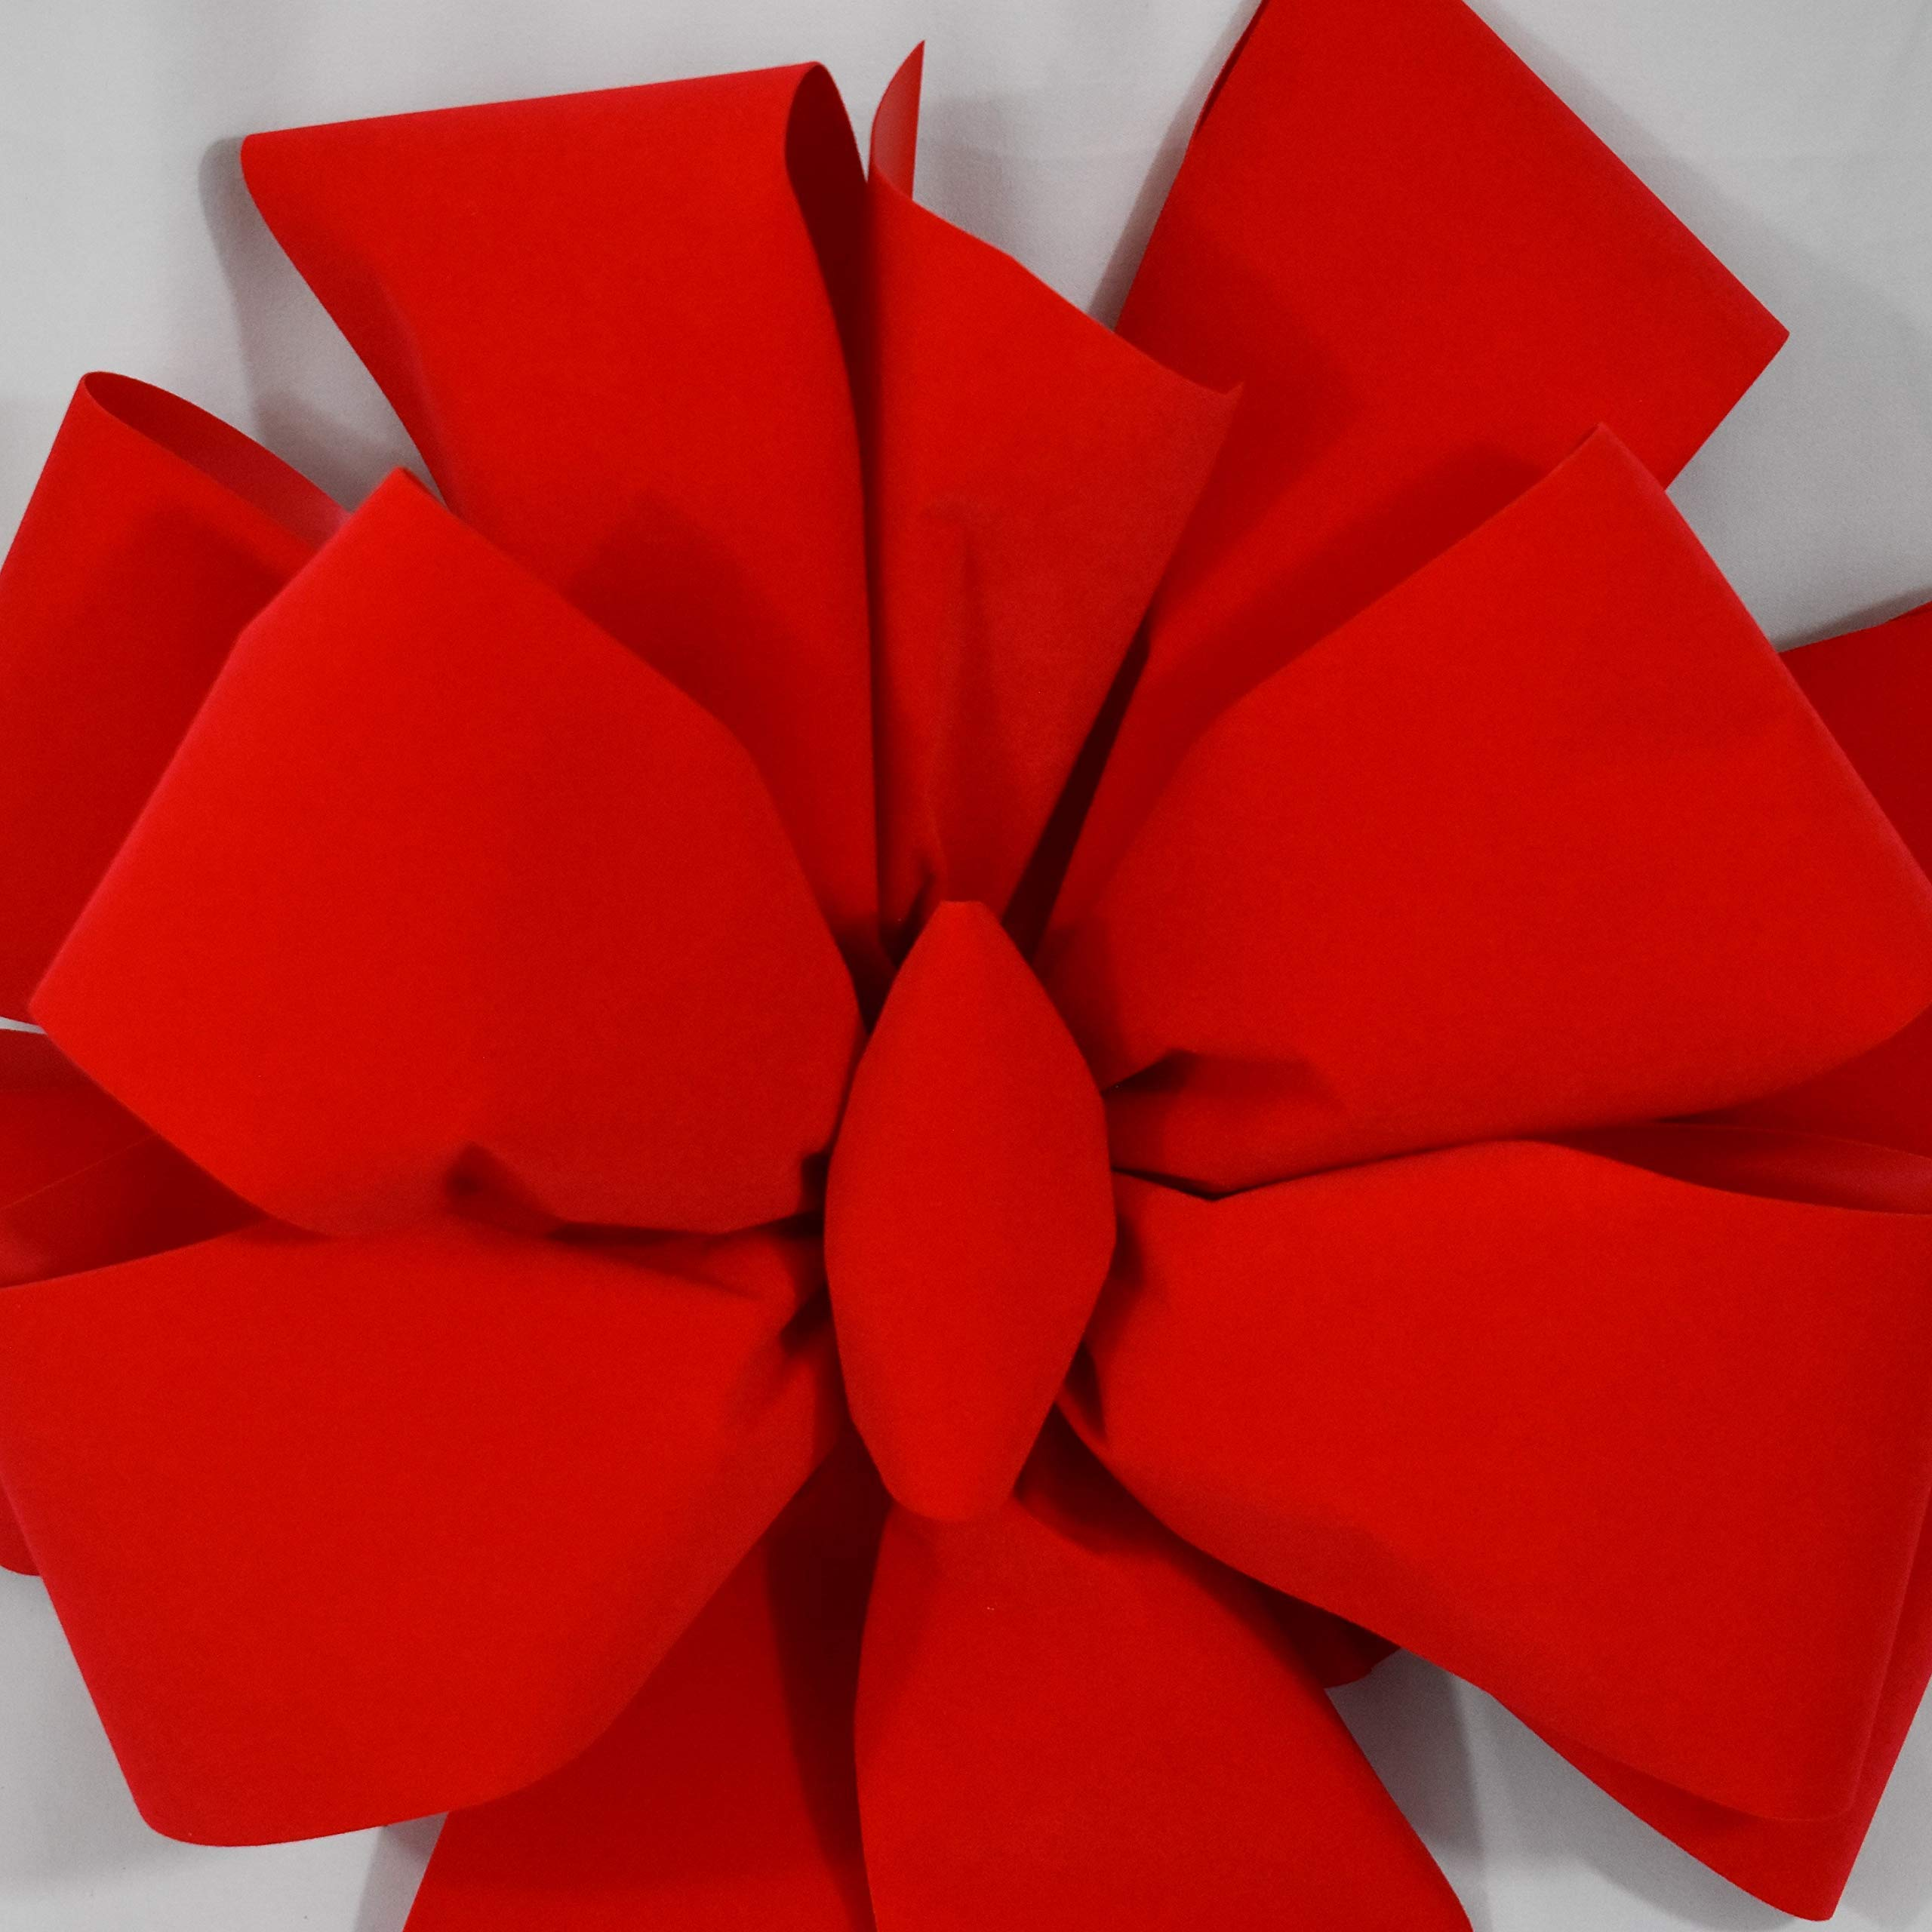 2 Big Red Bows ($24.99 EA) FREE SHIPPING Large Red Velvet Christmas Bow 15''W 44''L 10 Loops 4'' Ribbon | Outdoor Indoor Decorations for Wreaths Tree Topper Gates Doors Grand Driveways | Fluffy Not Flat